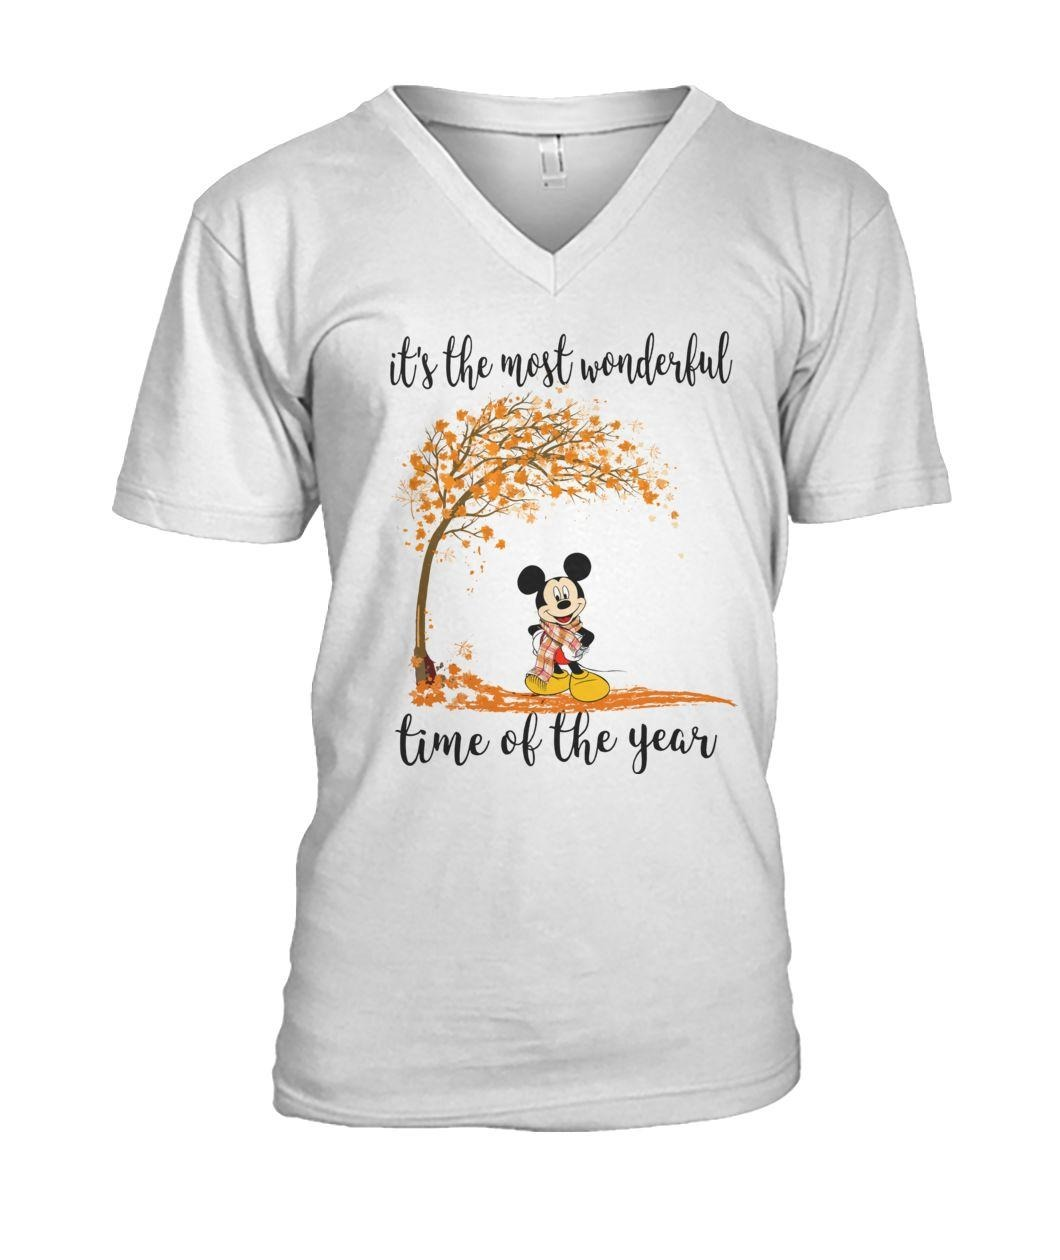 Mickey Mouse it's the most wonderful time of year V-neck T-shirt